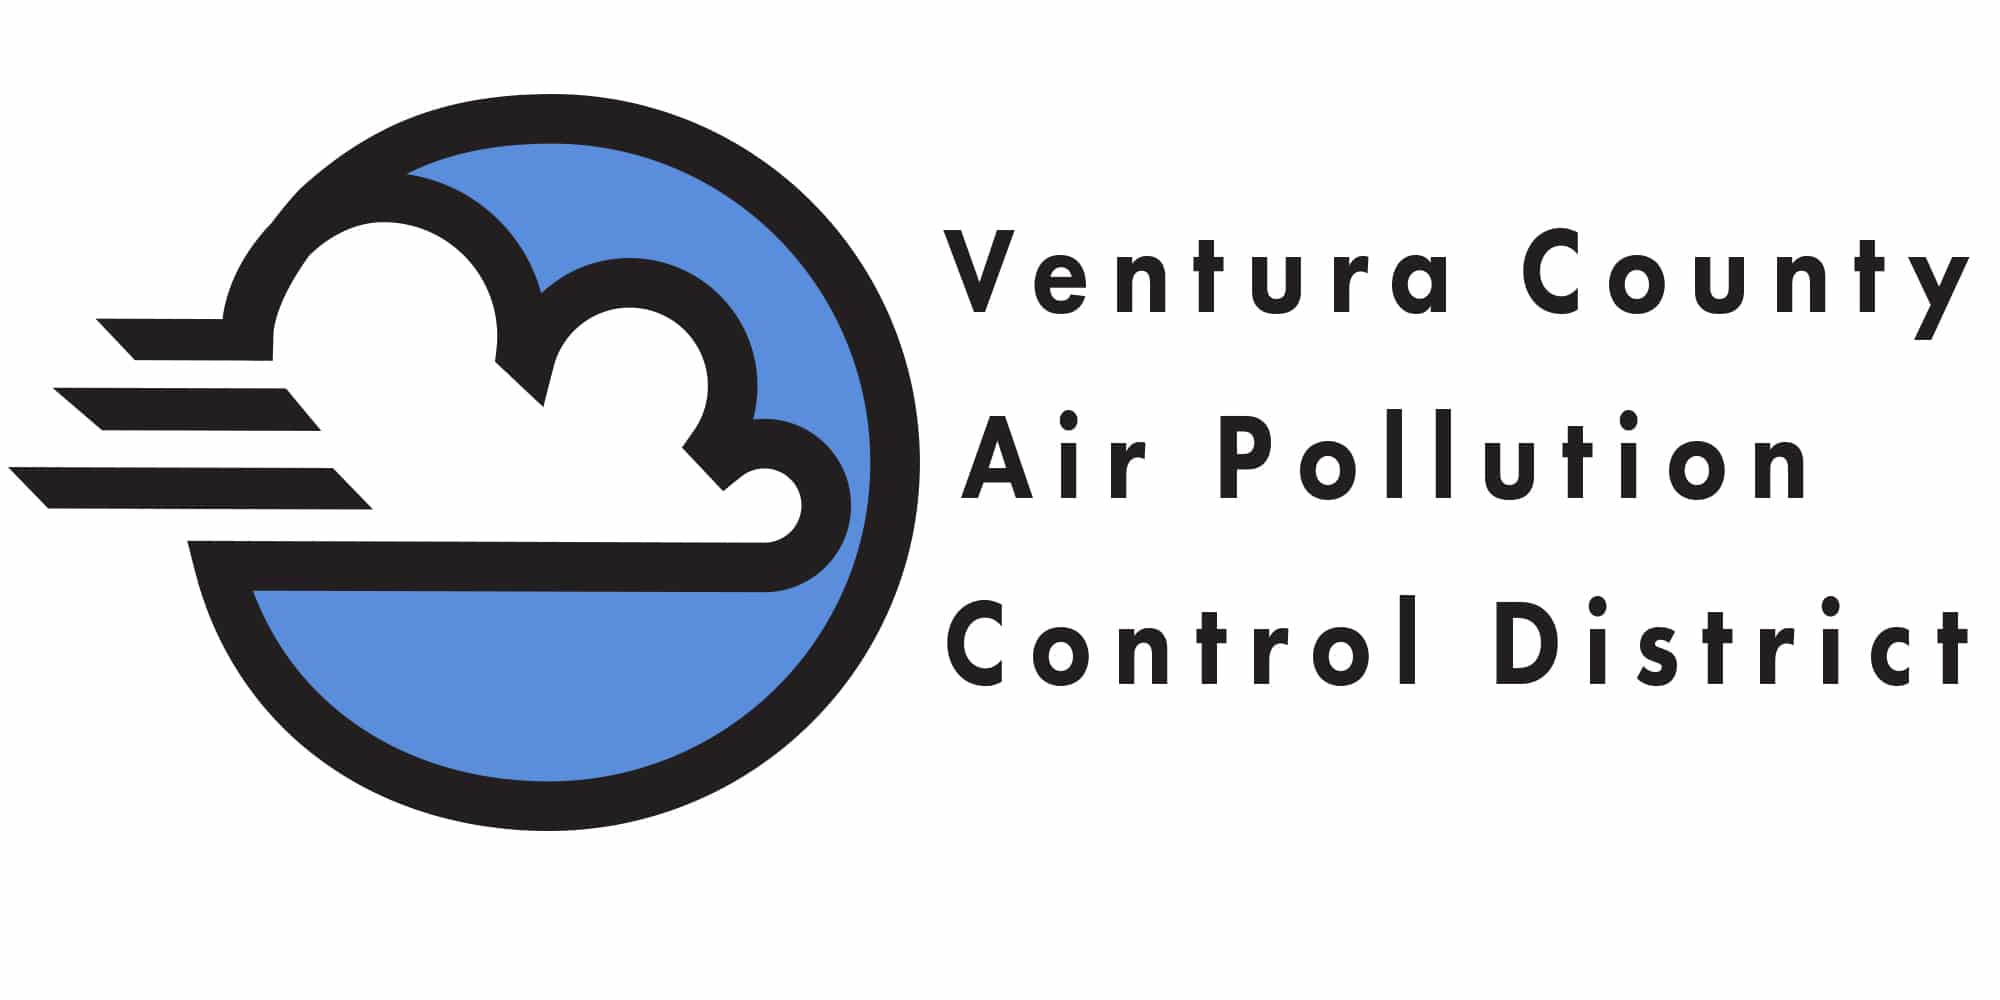 Ventura County Air Pollution Control District